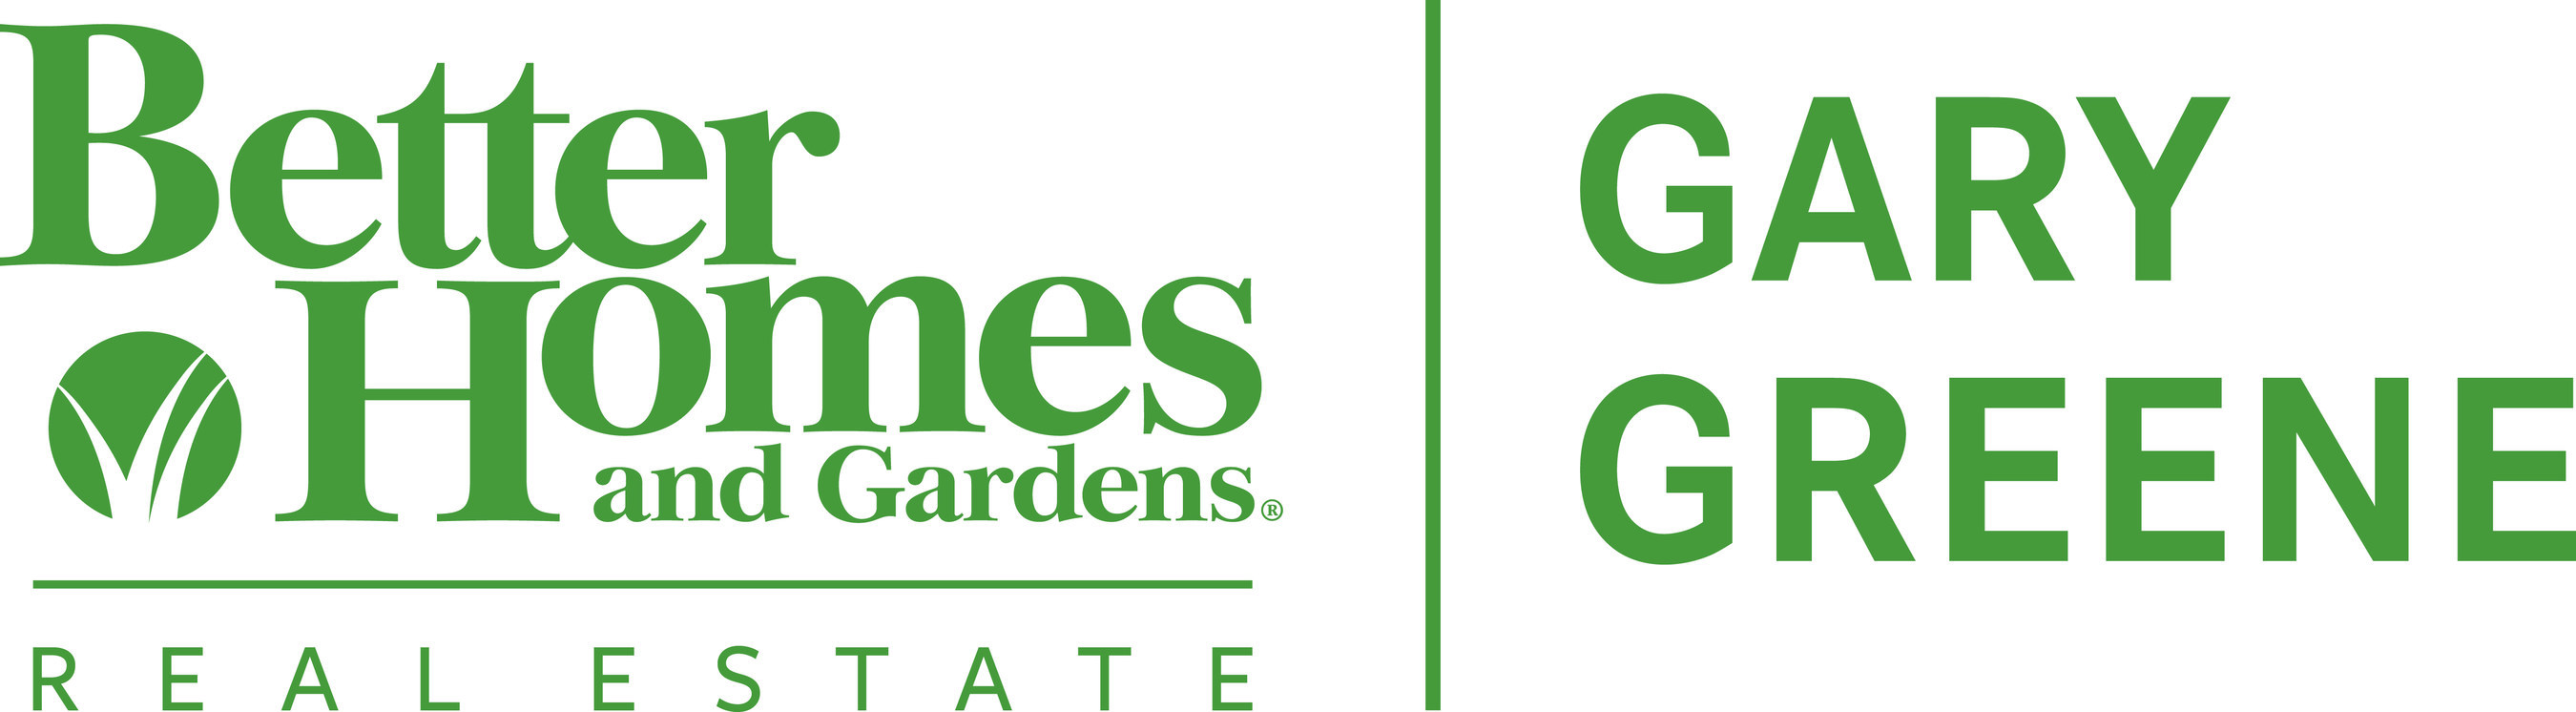 Better Homes and Gardens Real Estate Gary Greene Logo